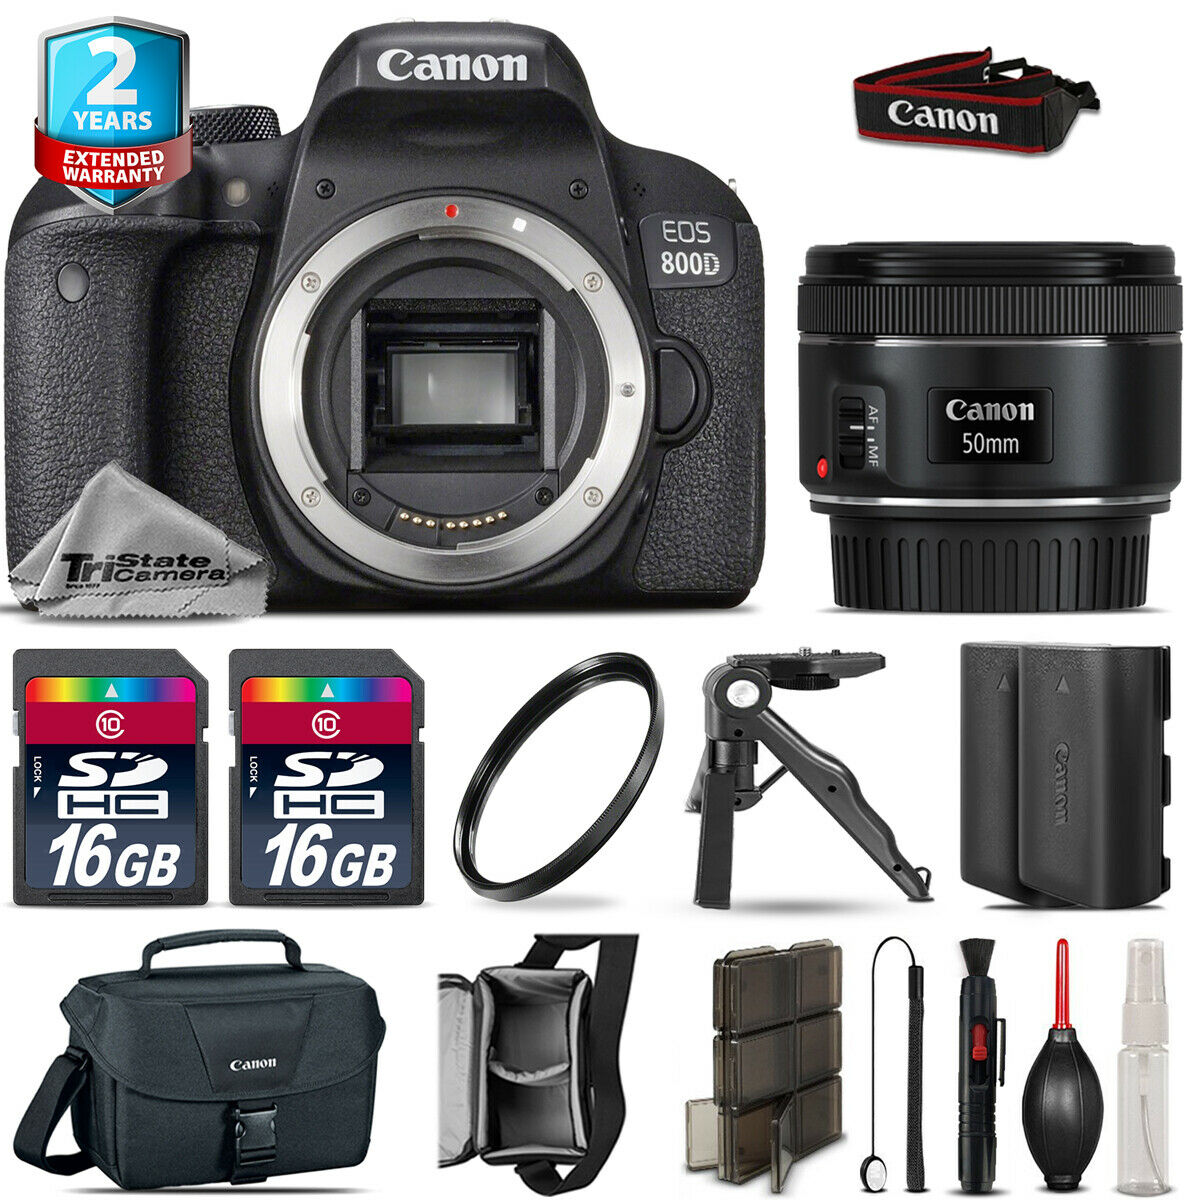 Canon Rebel 800D T7i Camera + 50mm 1.8 STM + Extra Battery + 32GB + 2yr Warranty